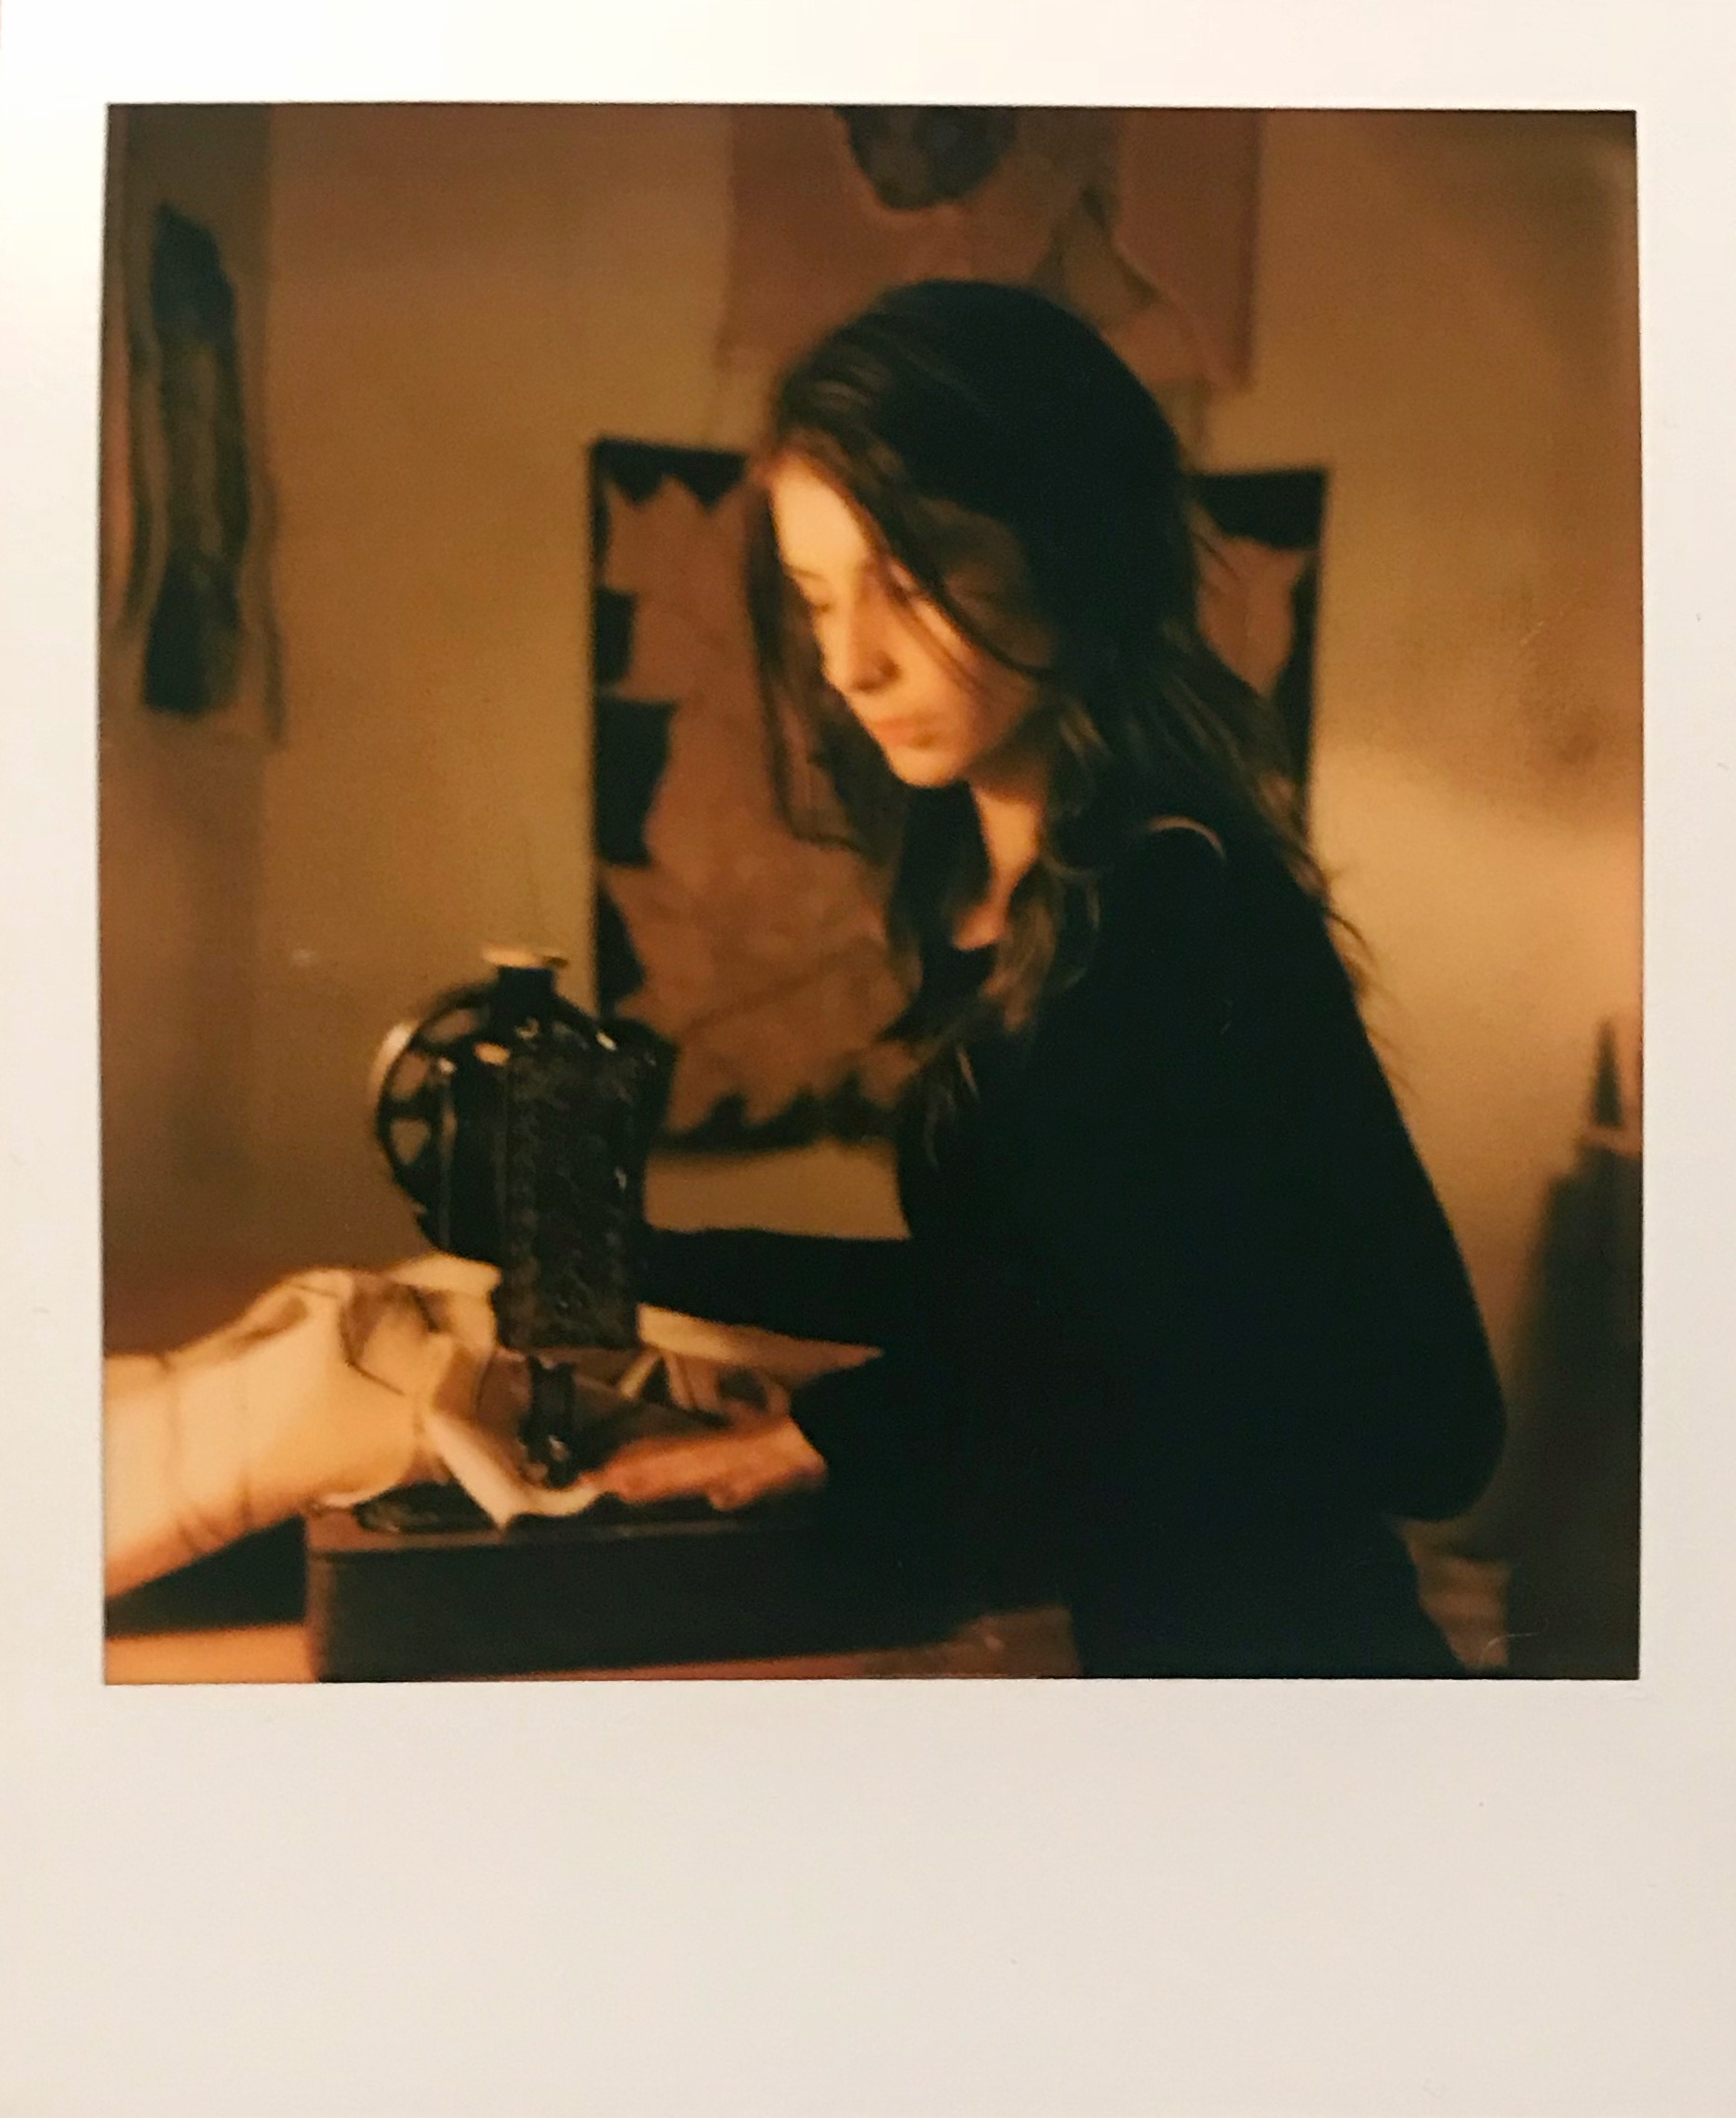 crismonts_laurarenee_polaroid_2